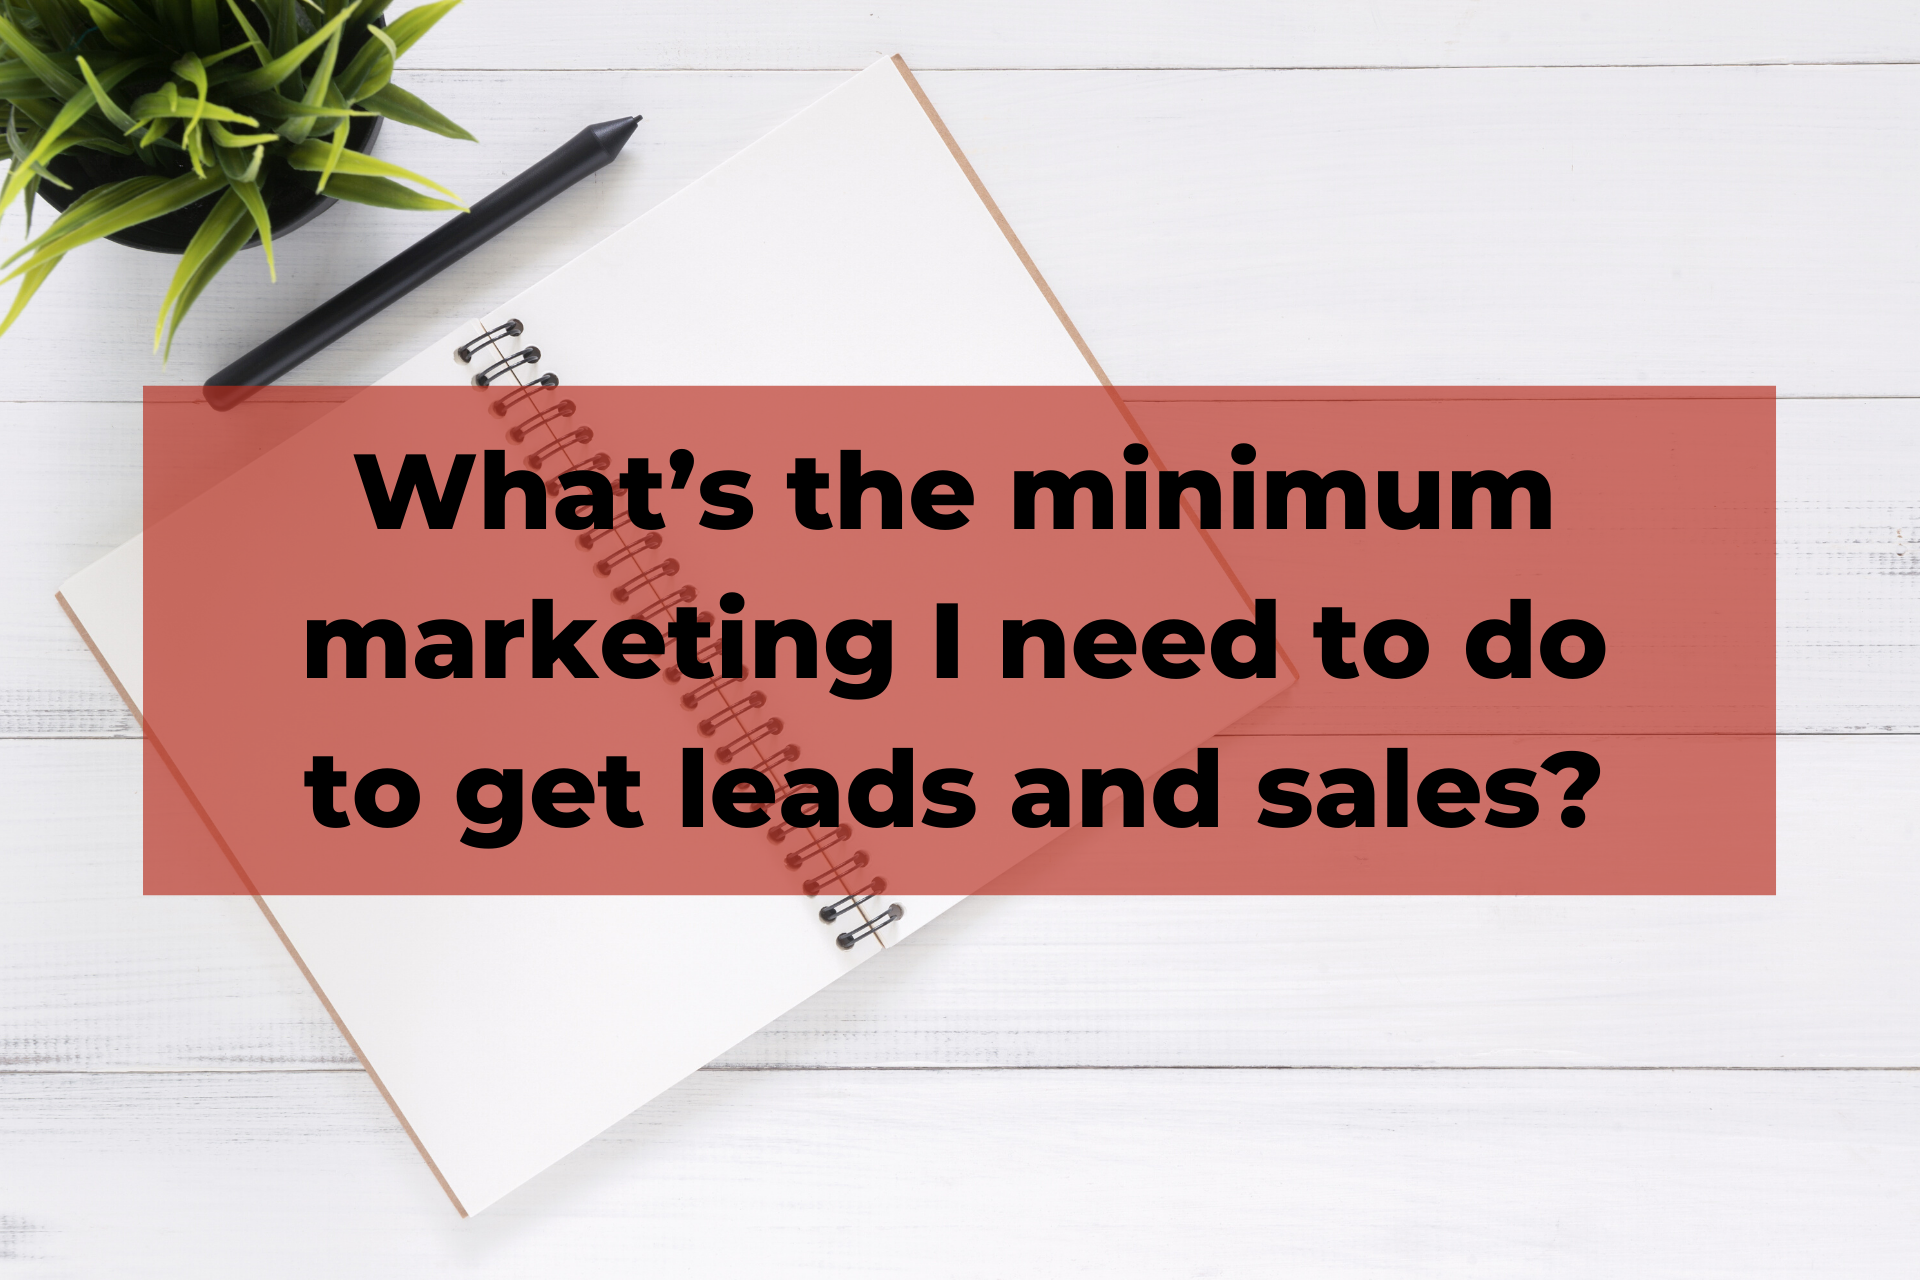 What's the minimum marketing I need to do to get leads and sales?